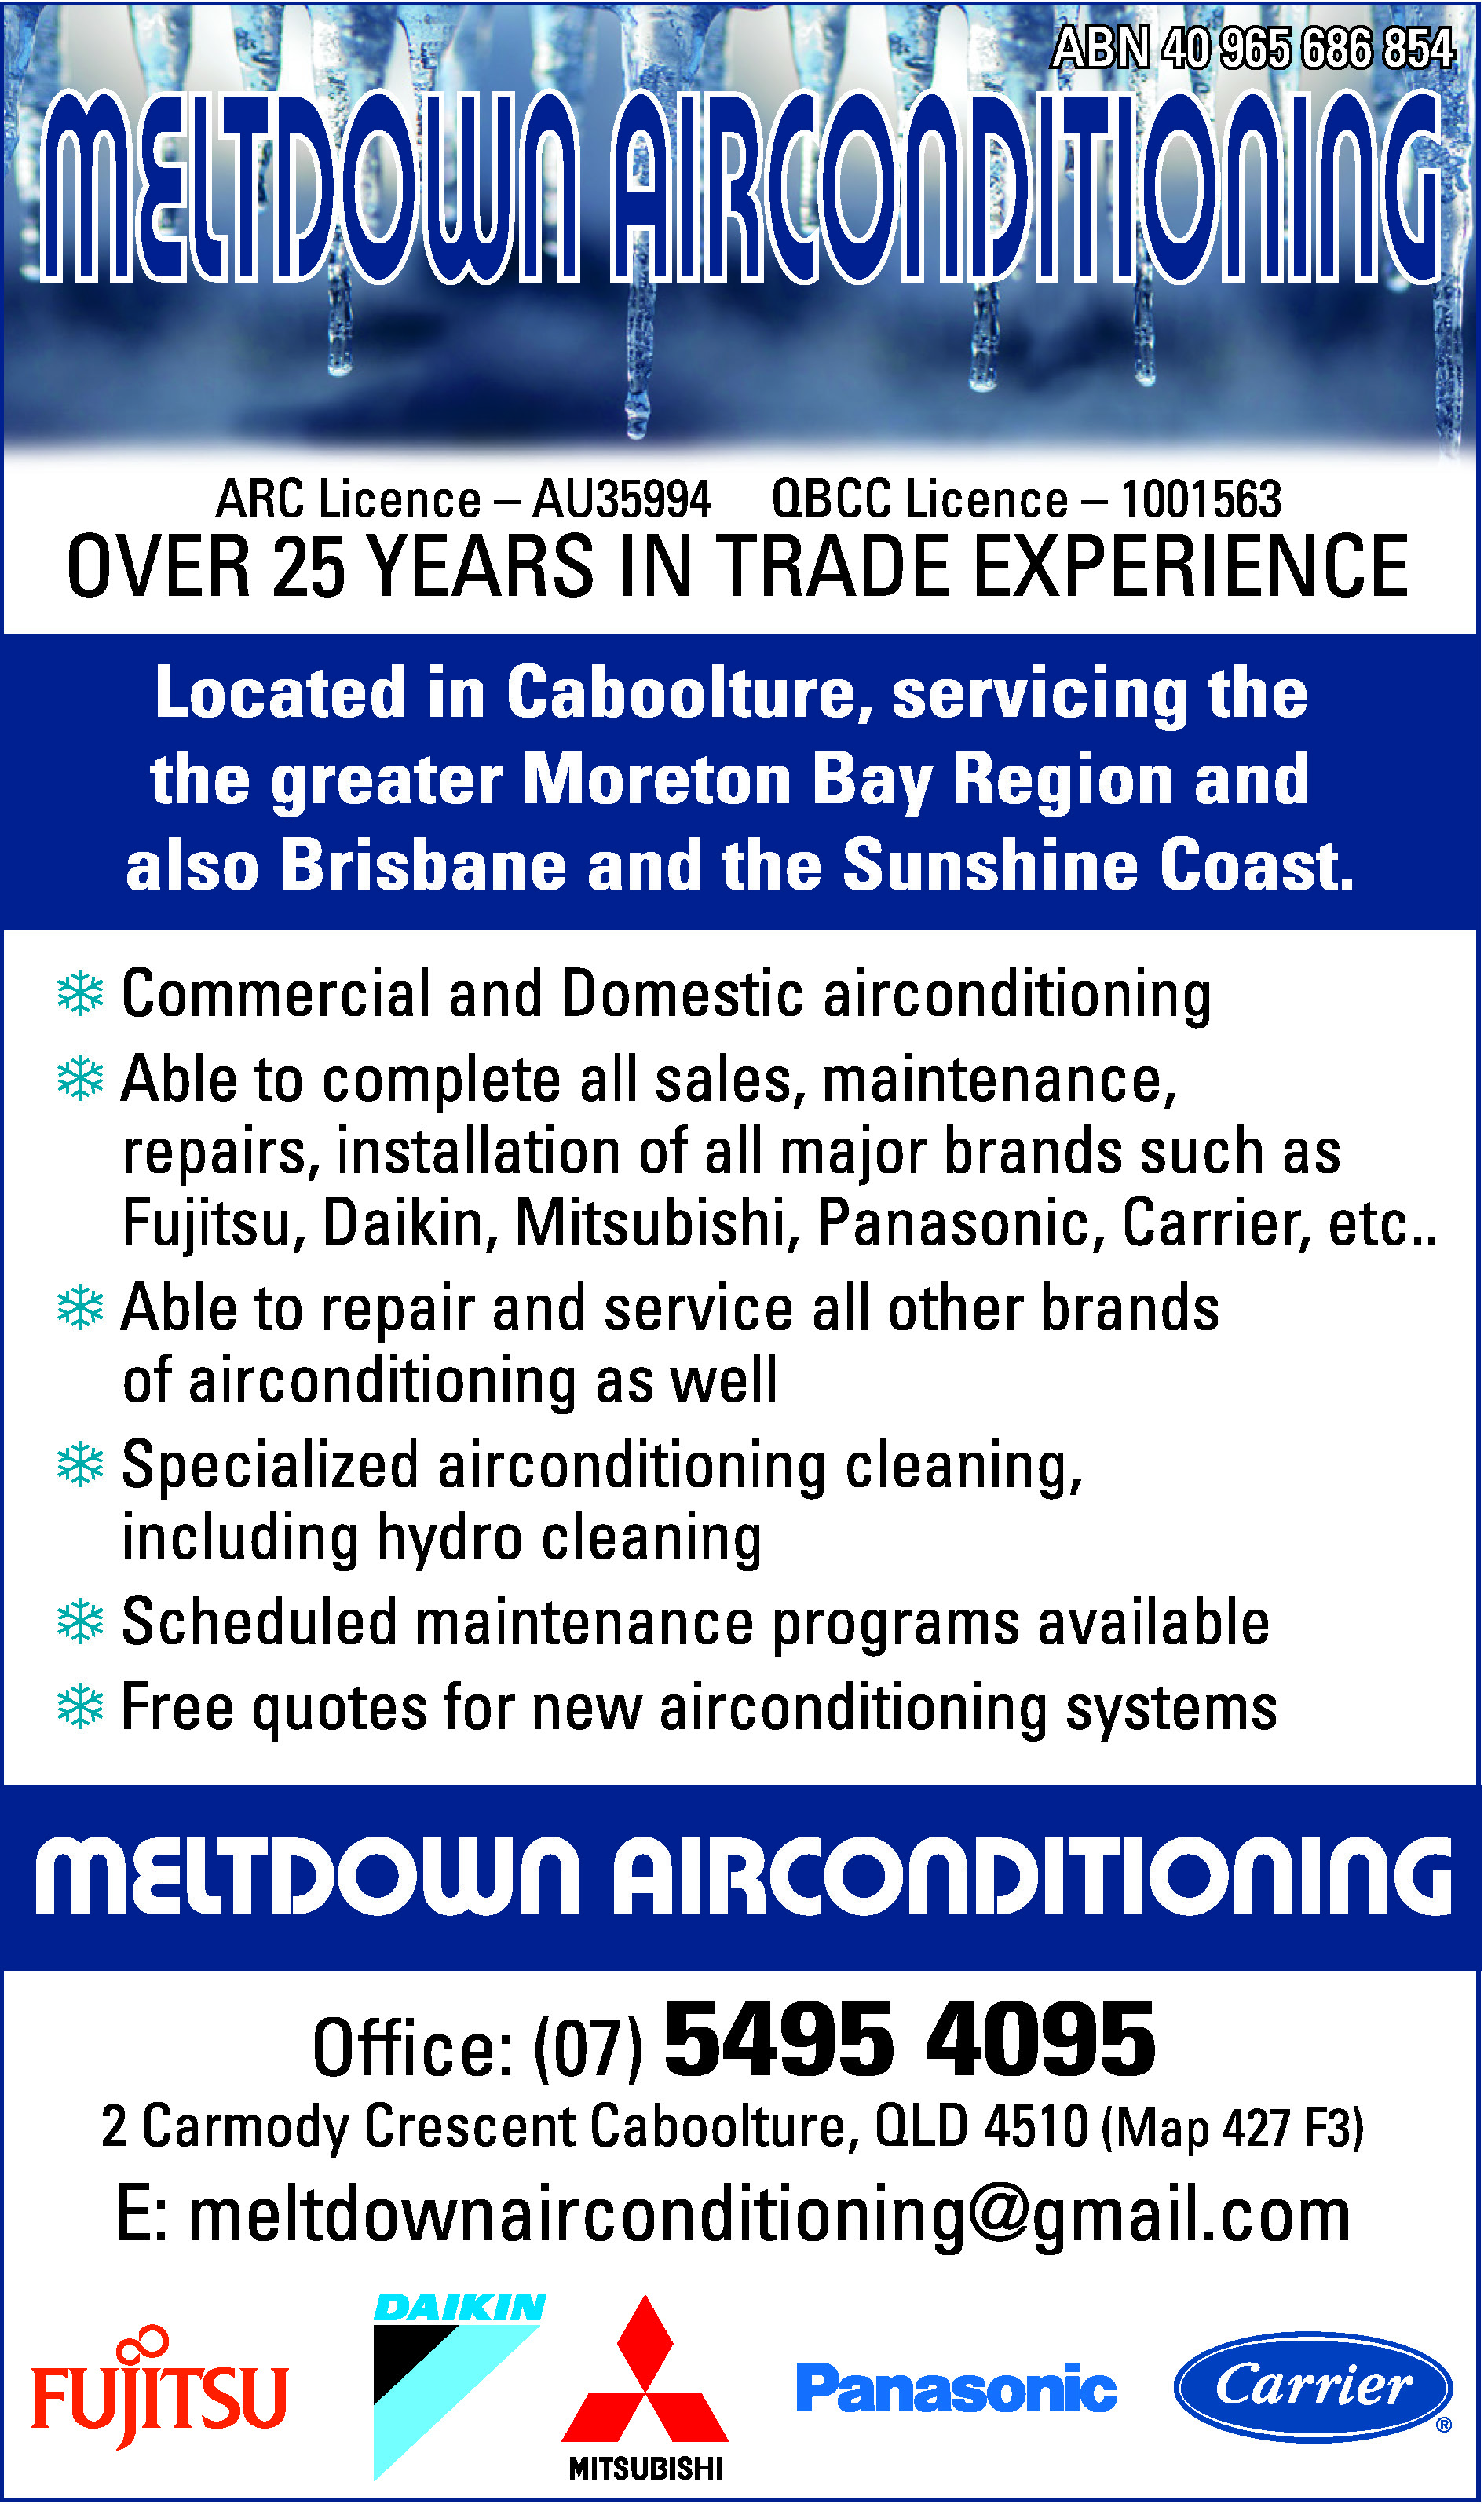 Meltdown Air Conditioning - Air Conditioning - Home